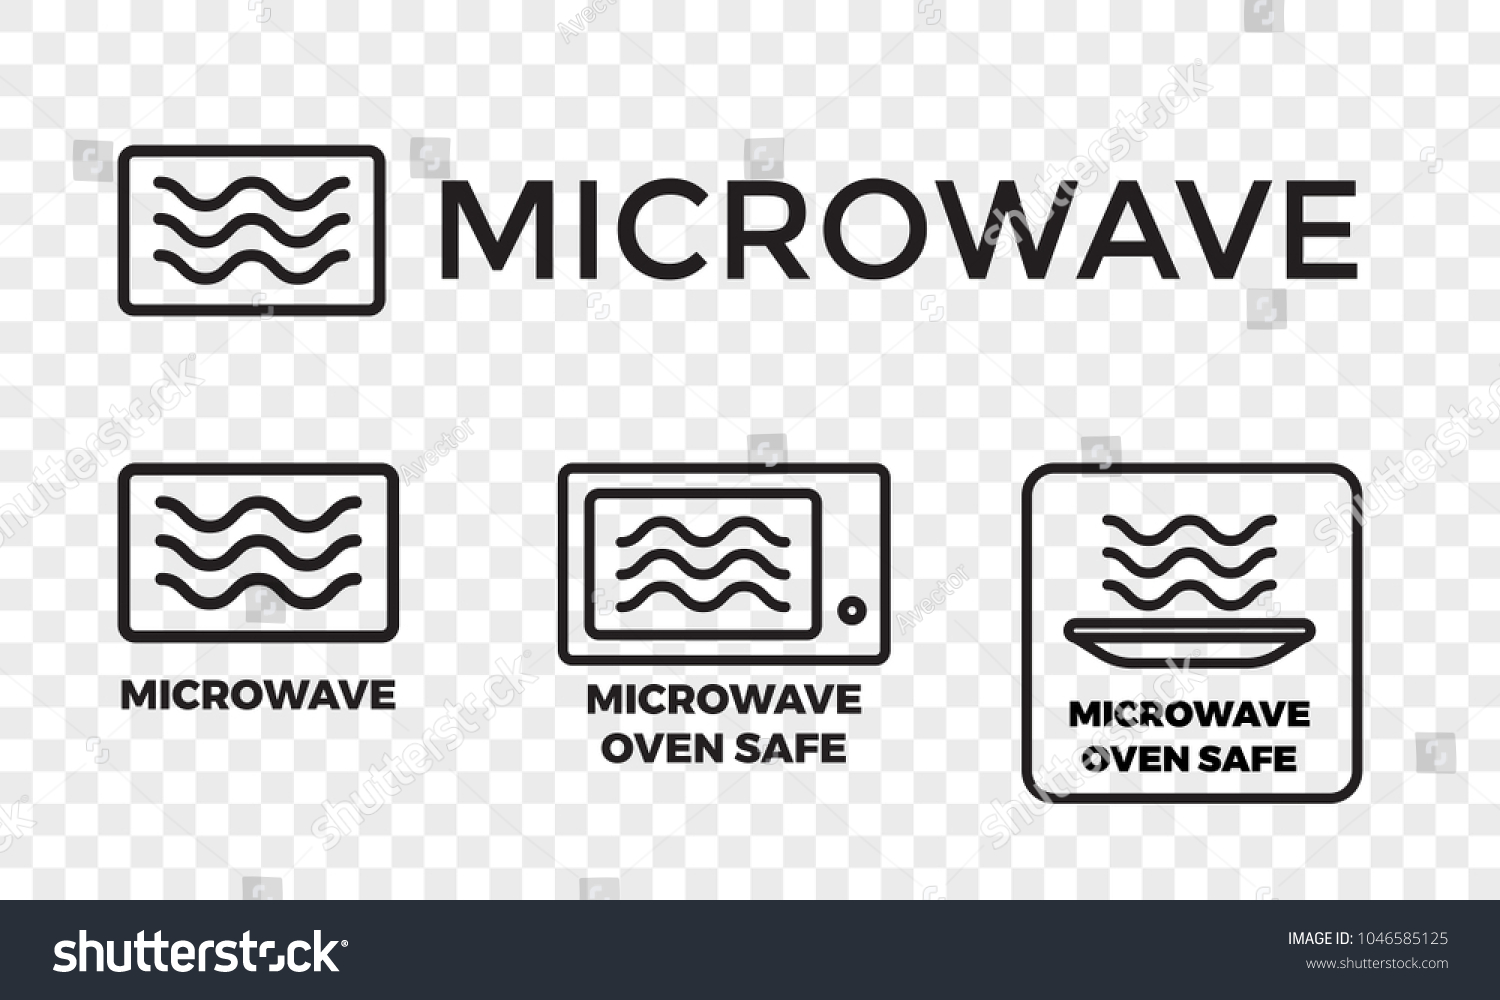 Microwave oven safe icon templates set stock vector 1046585125 microwave oven safe icon templates set vector isolated line symbols or labels for plastic dish buycottarizona